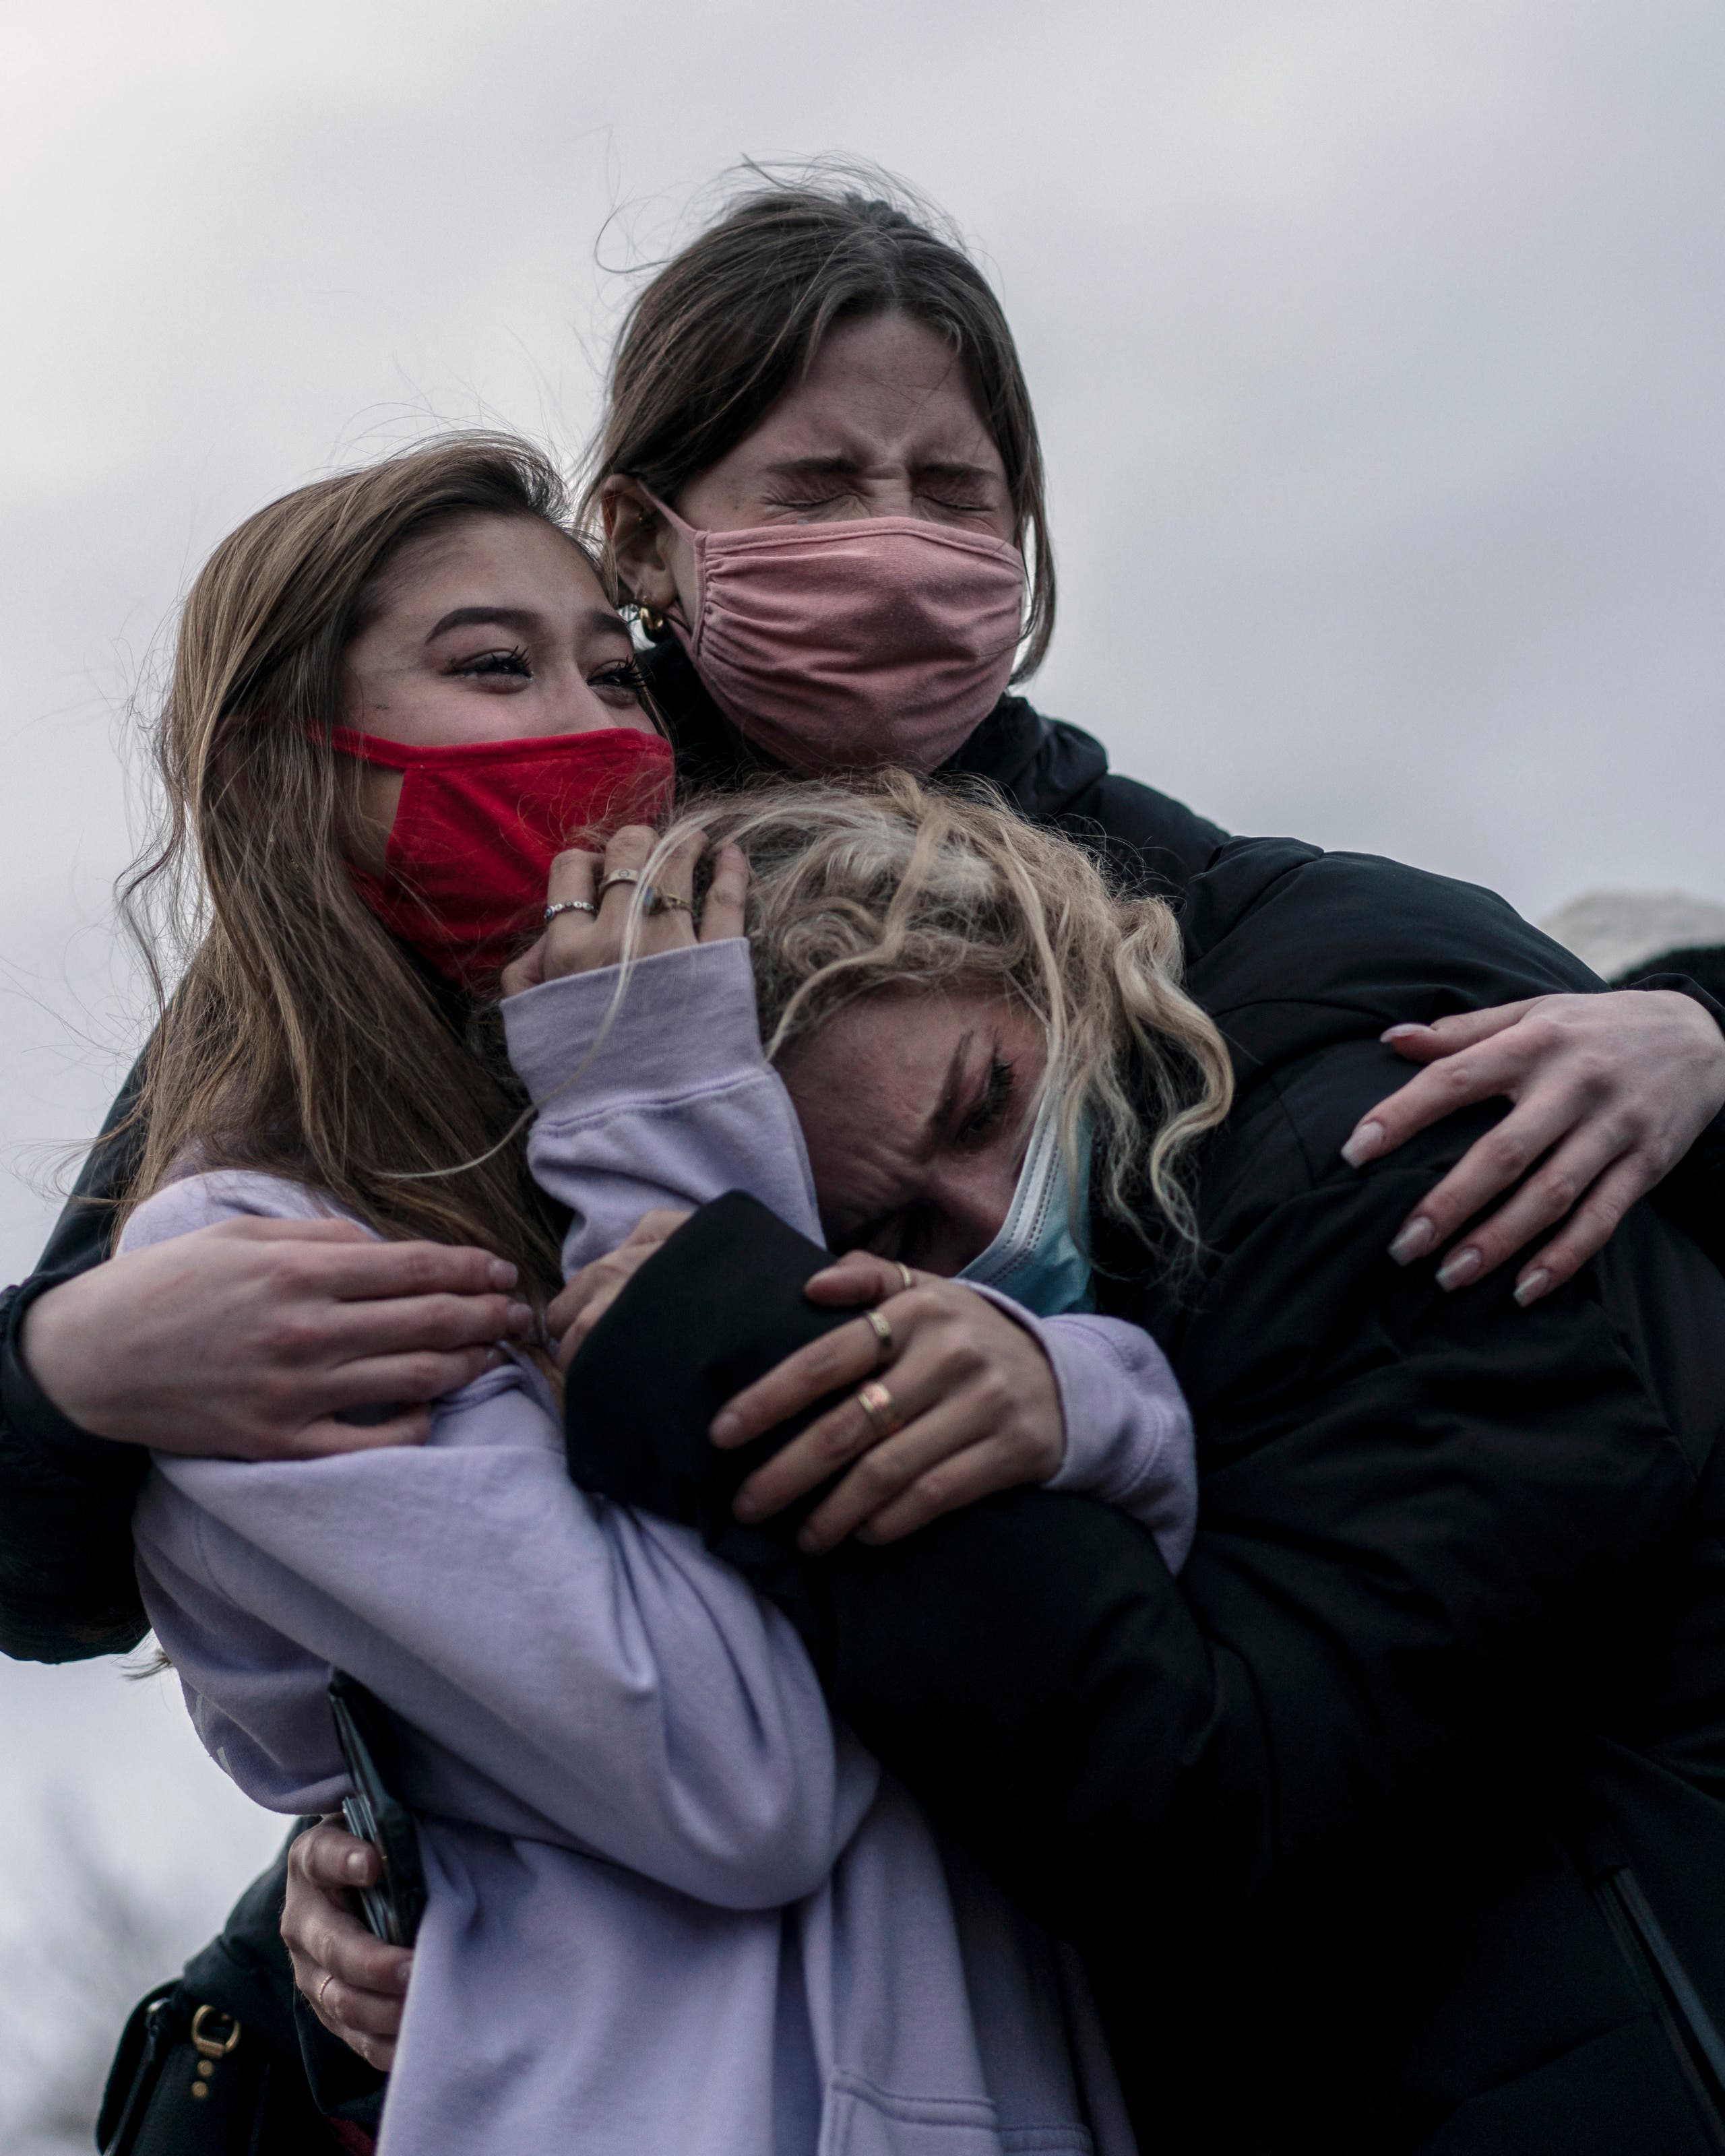 Mourners cry while looking at the scene of the crime the day after a gunman opened fired at a King Sooper's grocery store on March 22, 2021 in Boulder, Colorado. (File photo: AFP)